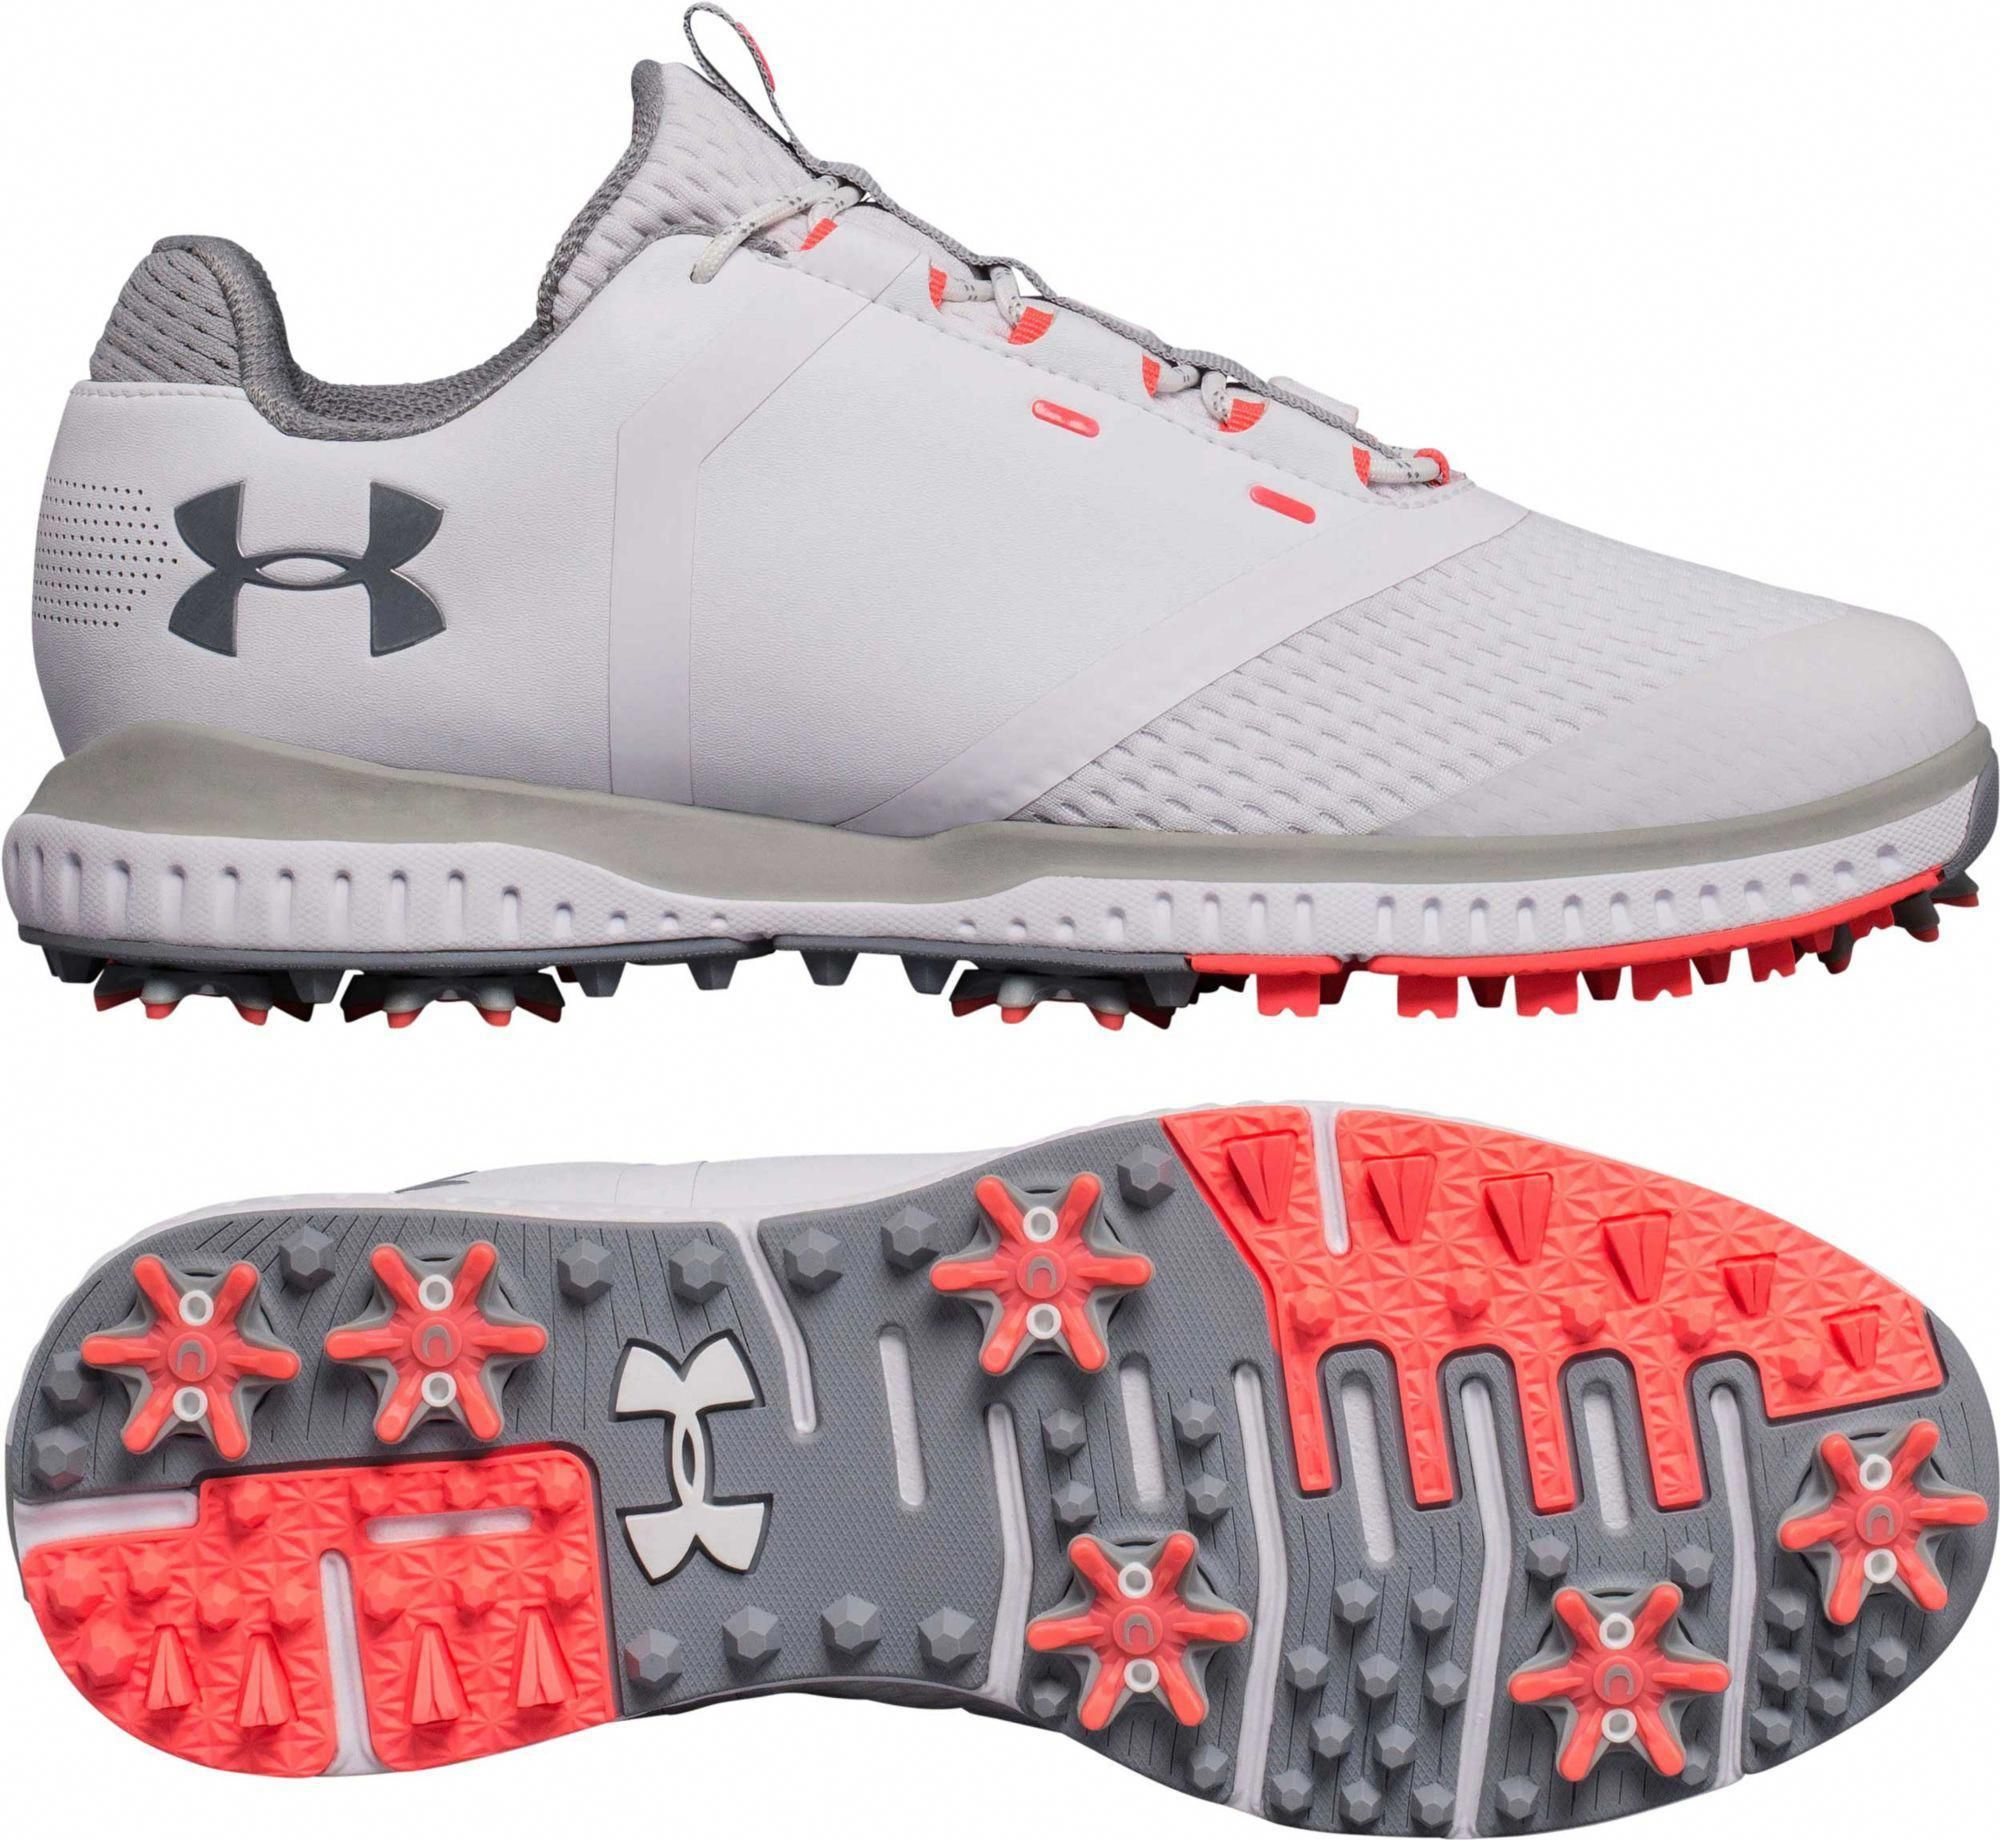 1163afe553480e Under Armour Women s Fade RST Golf Shoes  golfclothing